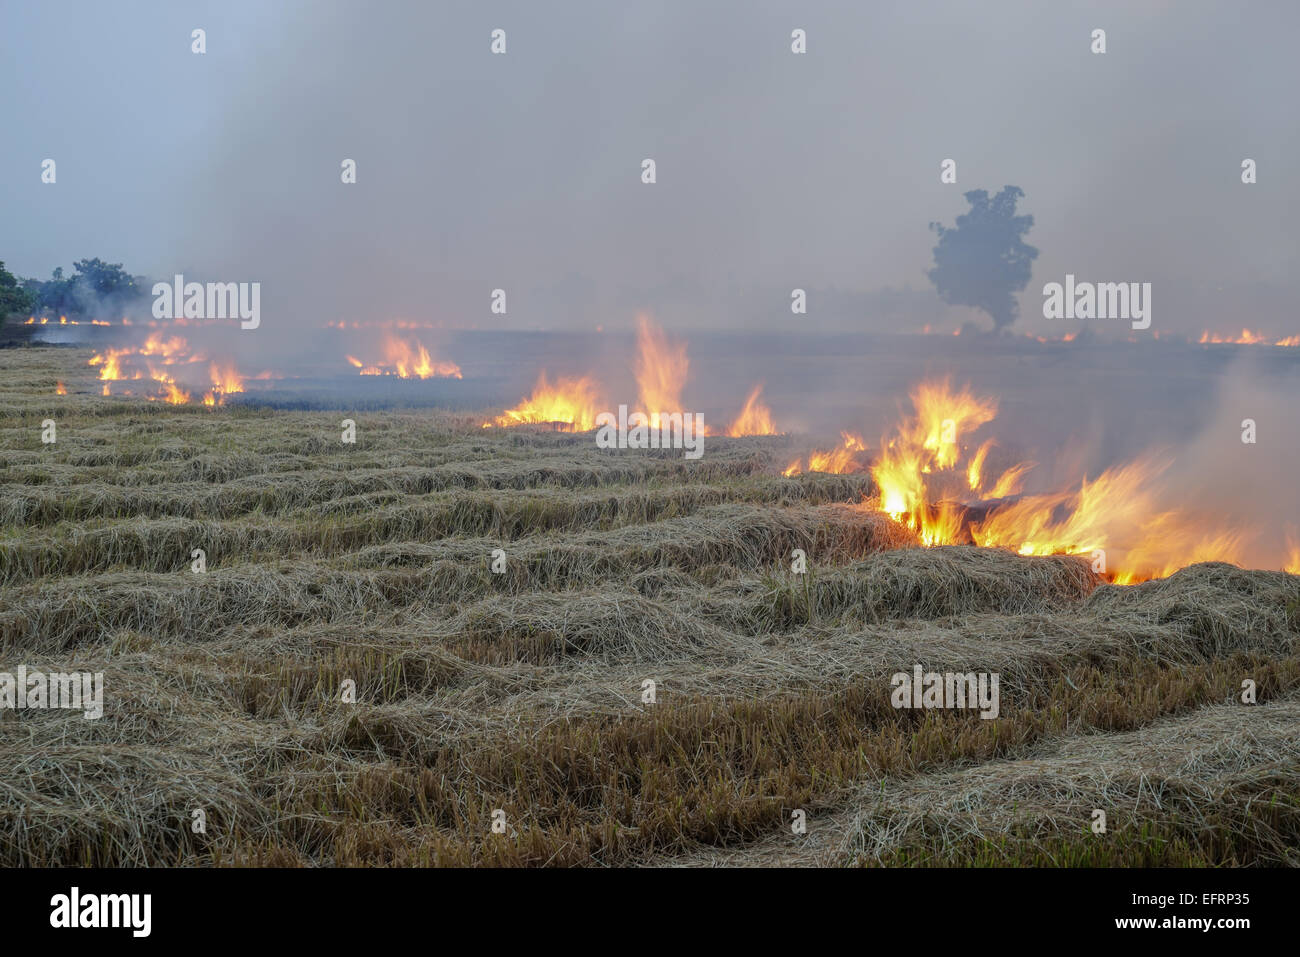 burning, the irresponsible choice to get rid of rice field stubble - Stock Image